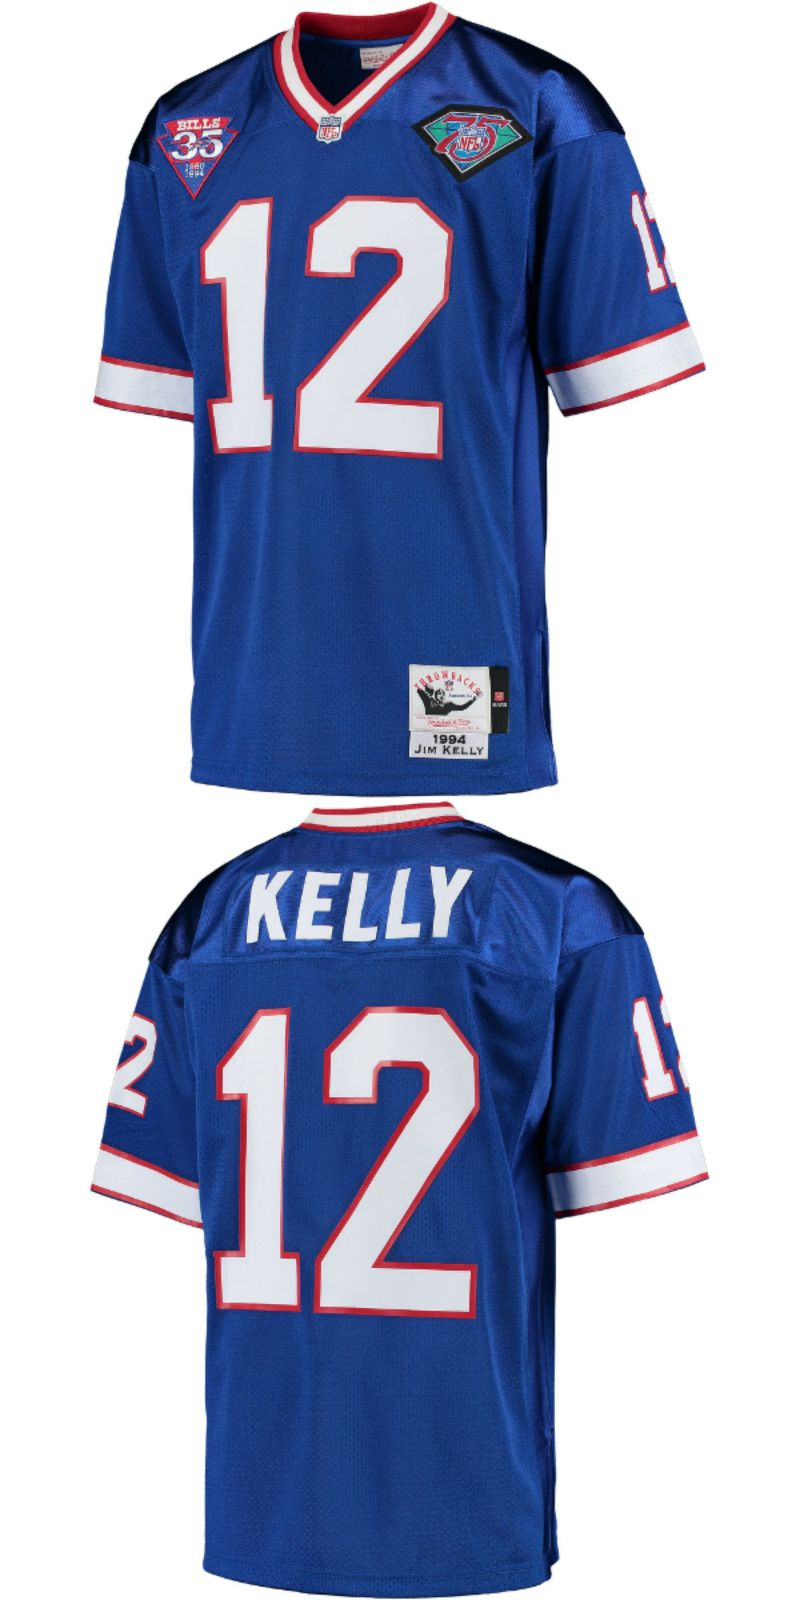 huge selection of 331ee f97ad Jim Kelly Buffalo Bills Mitchell & Ness 1994 35th ...